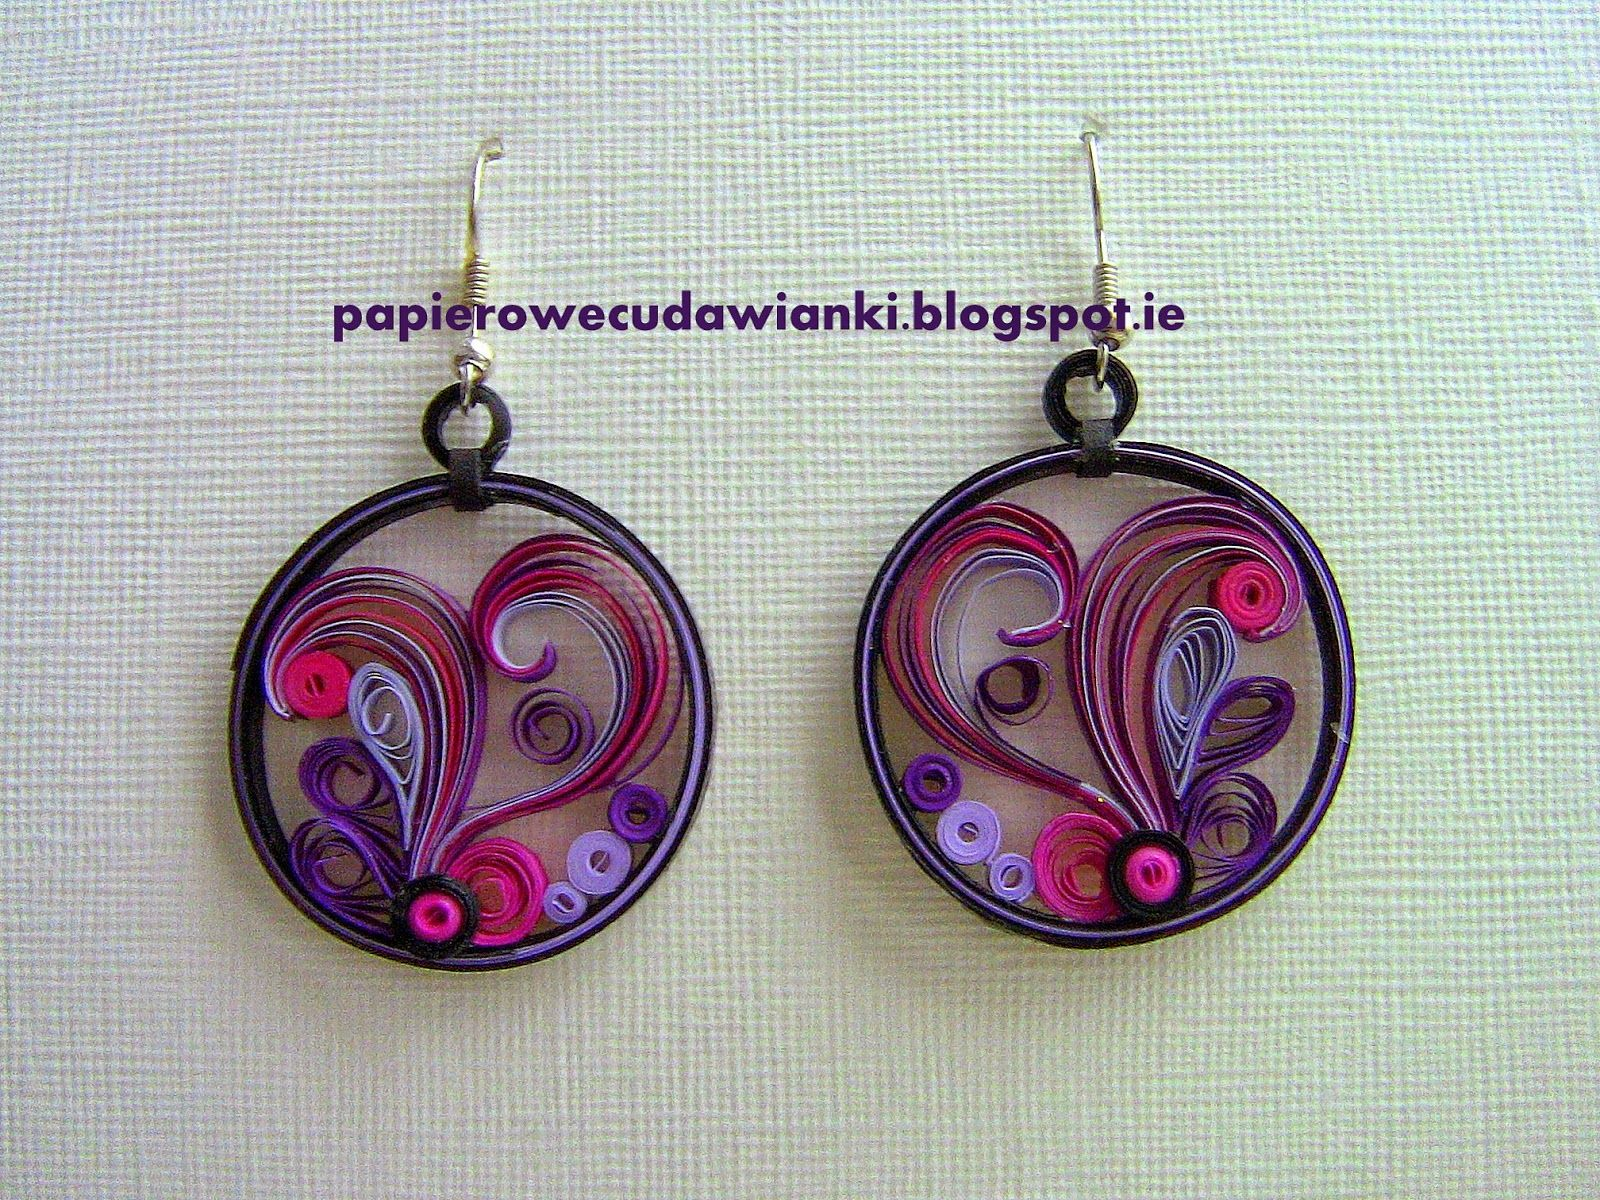 Quilling Earrings More Designs : Quilled Earrings Quilling bijoux Pinterest Quilling